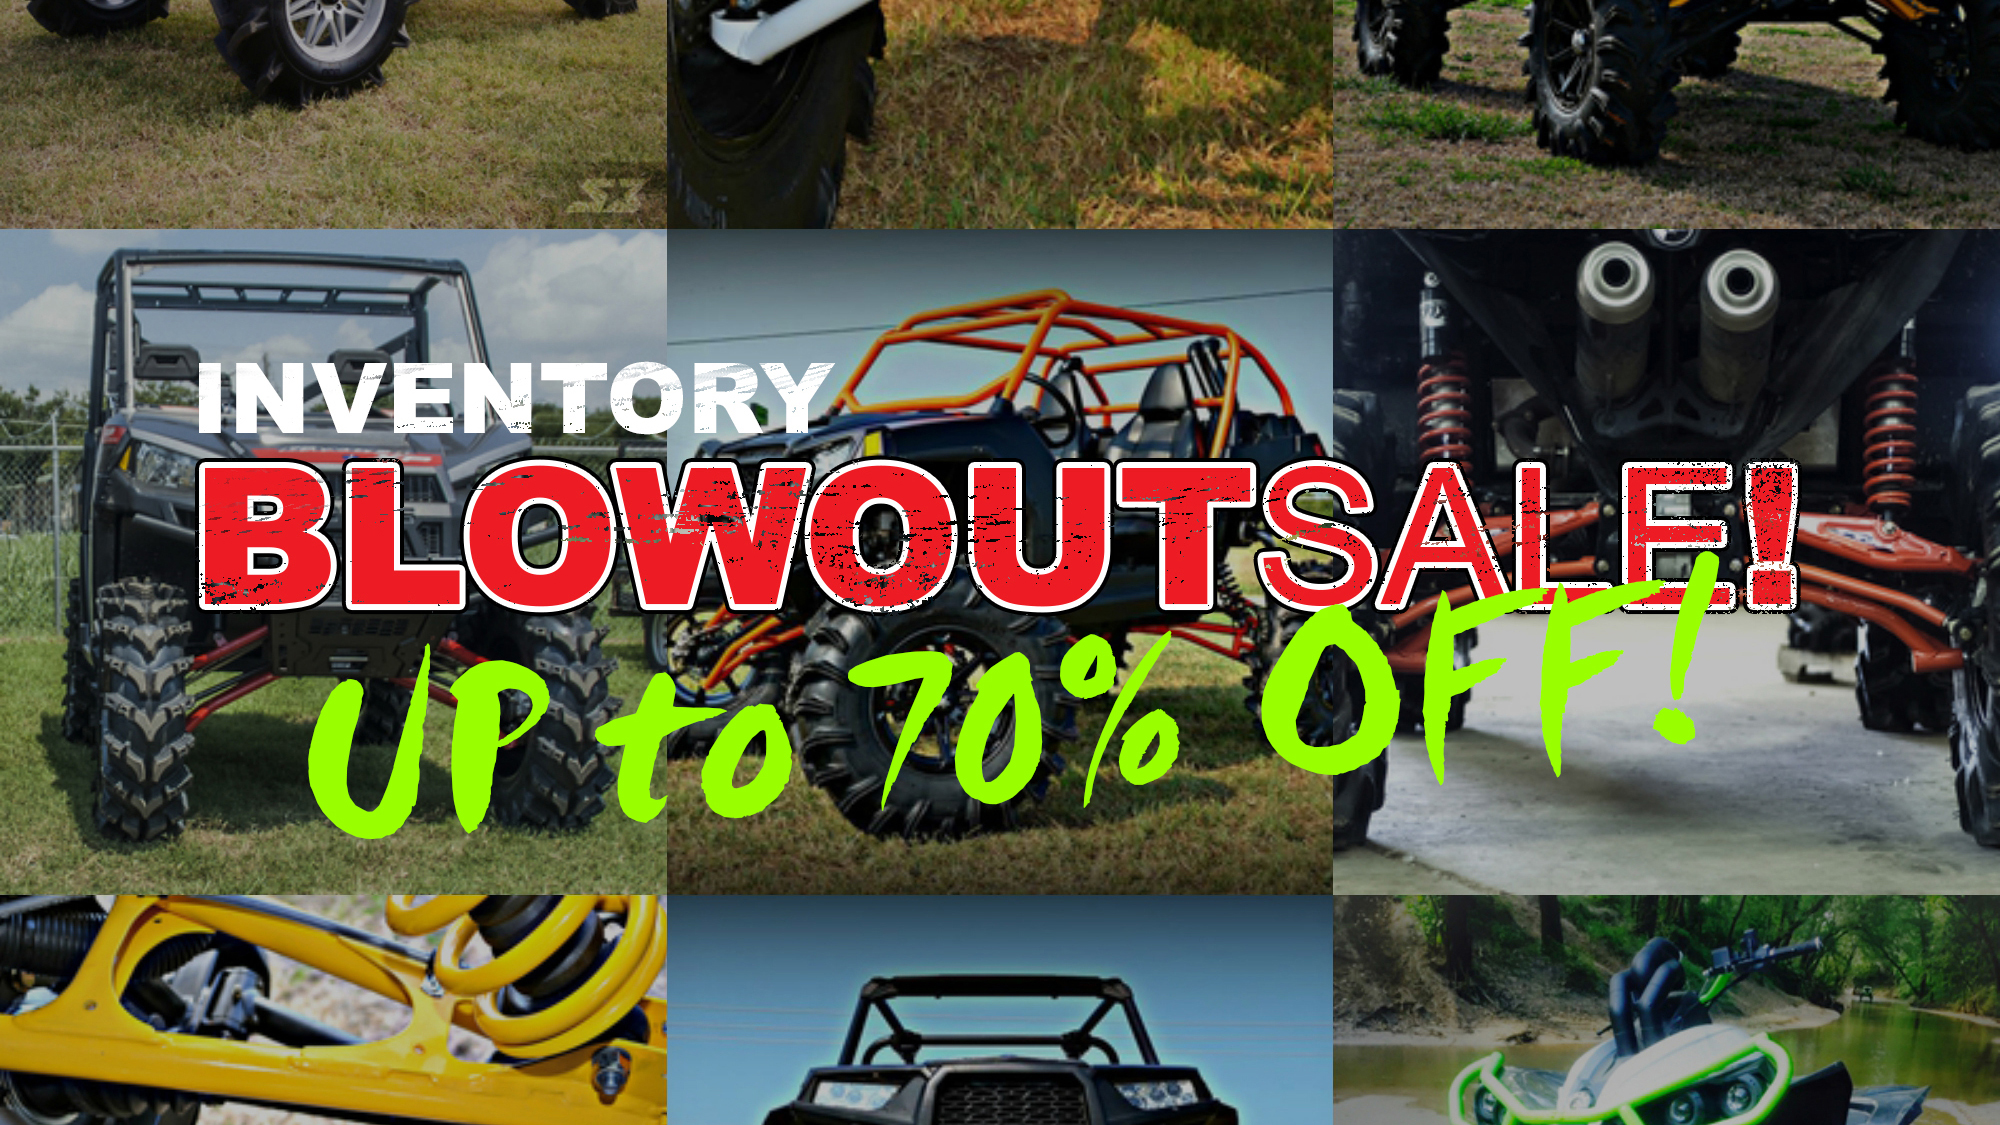 Inventory Blowout Sale!